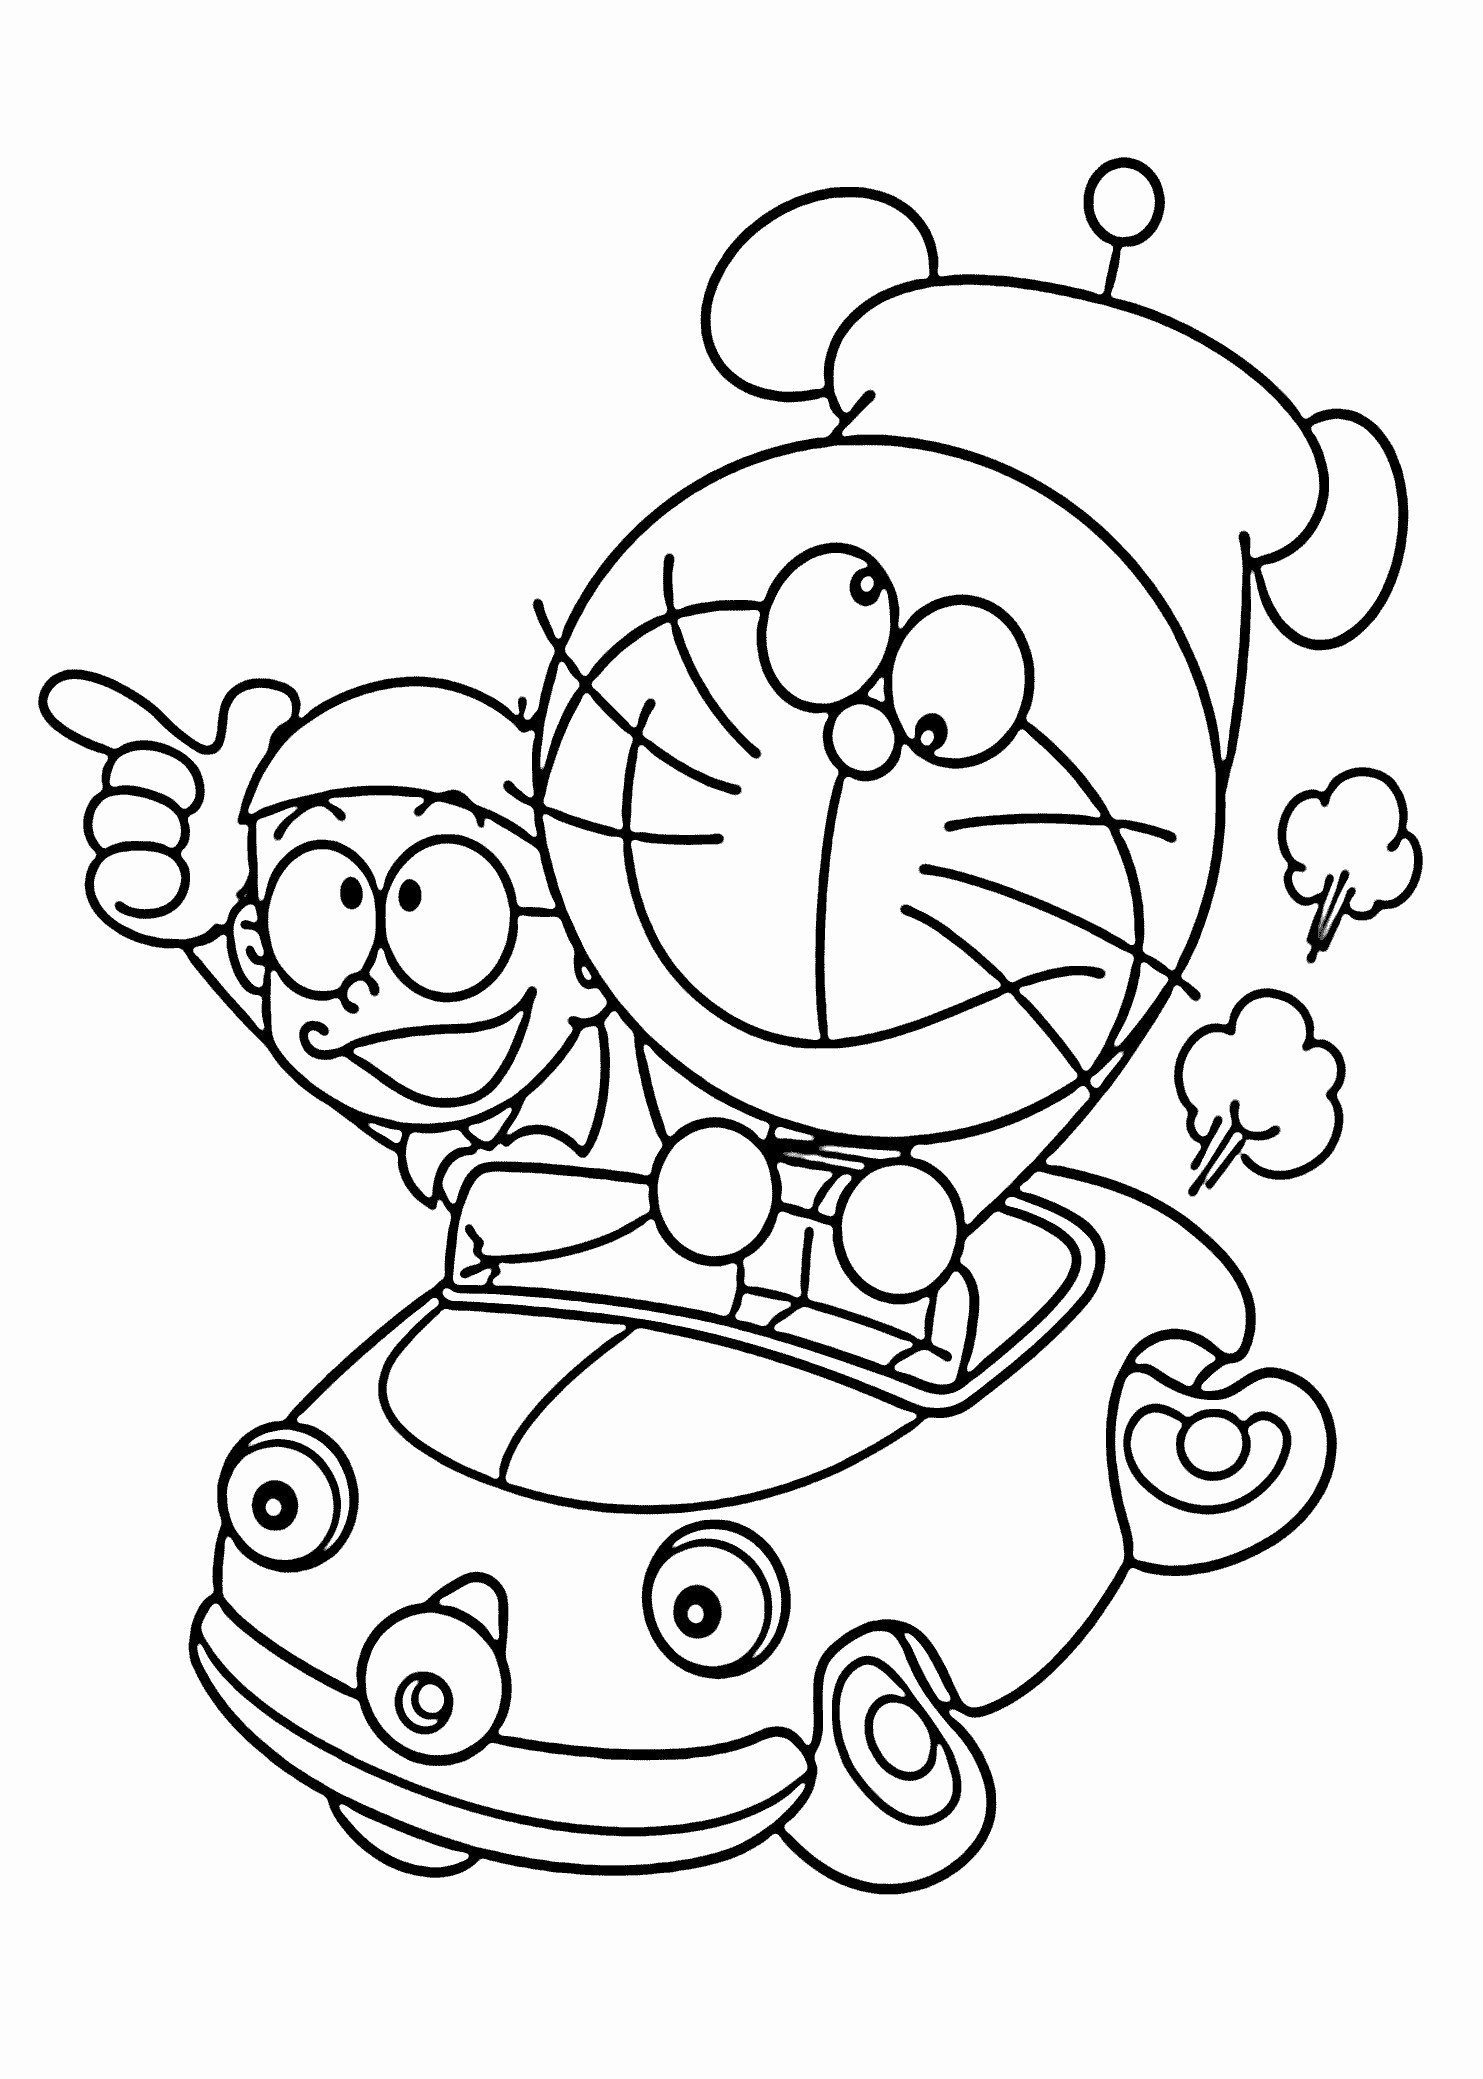 Christmas Shopkins Coloring Pages Elegant Face Expressions Coloring Pages Mrsztuczkens Valentine Coloring Pages Turkey Coloring Pages Animal Coloring Pages